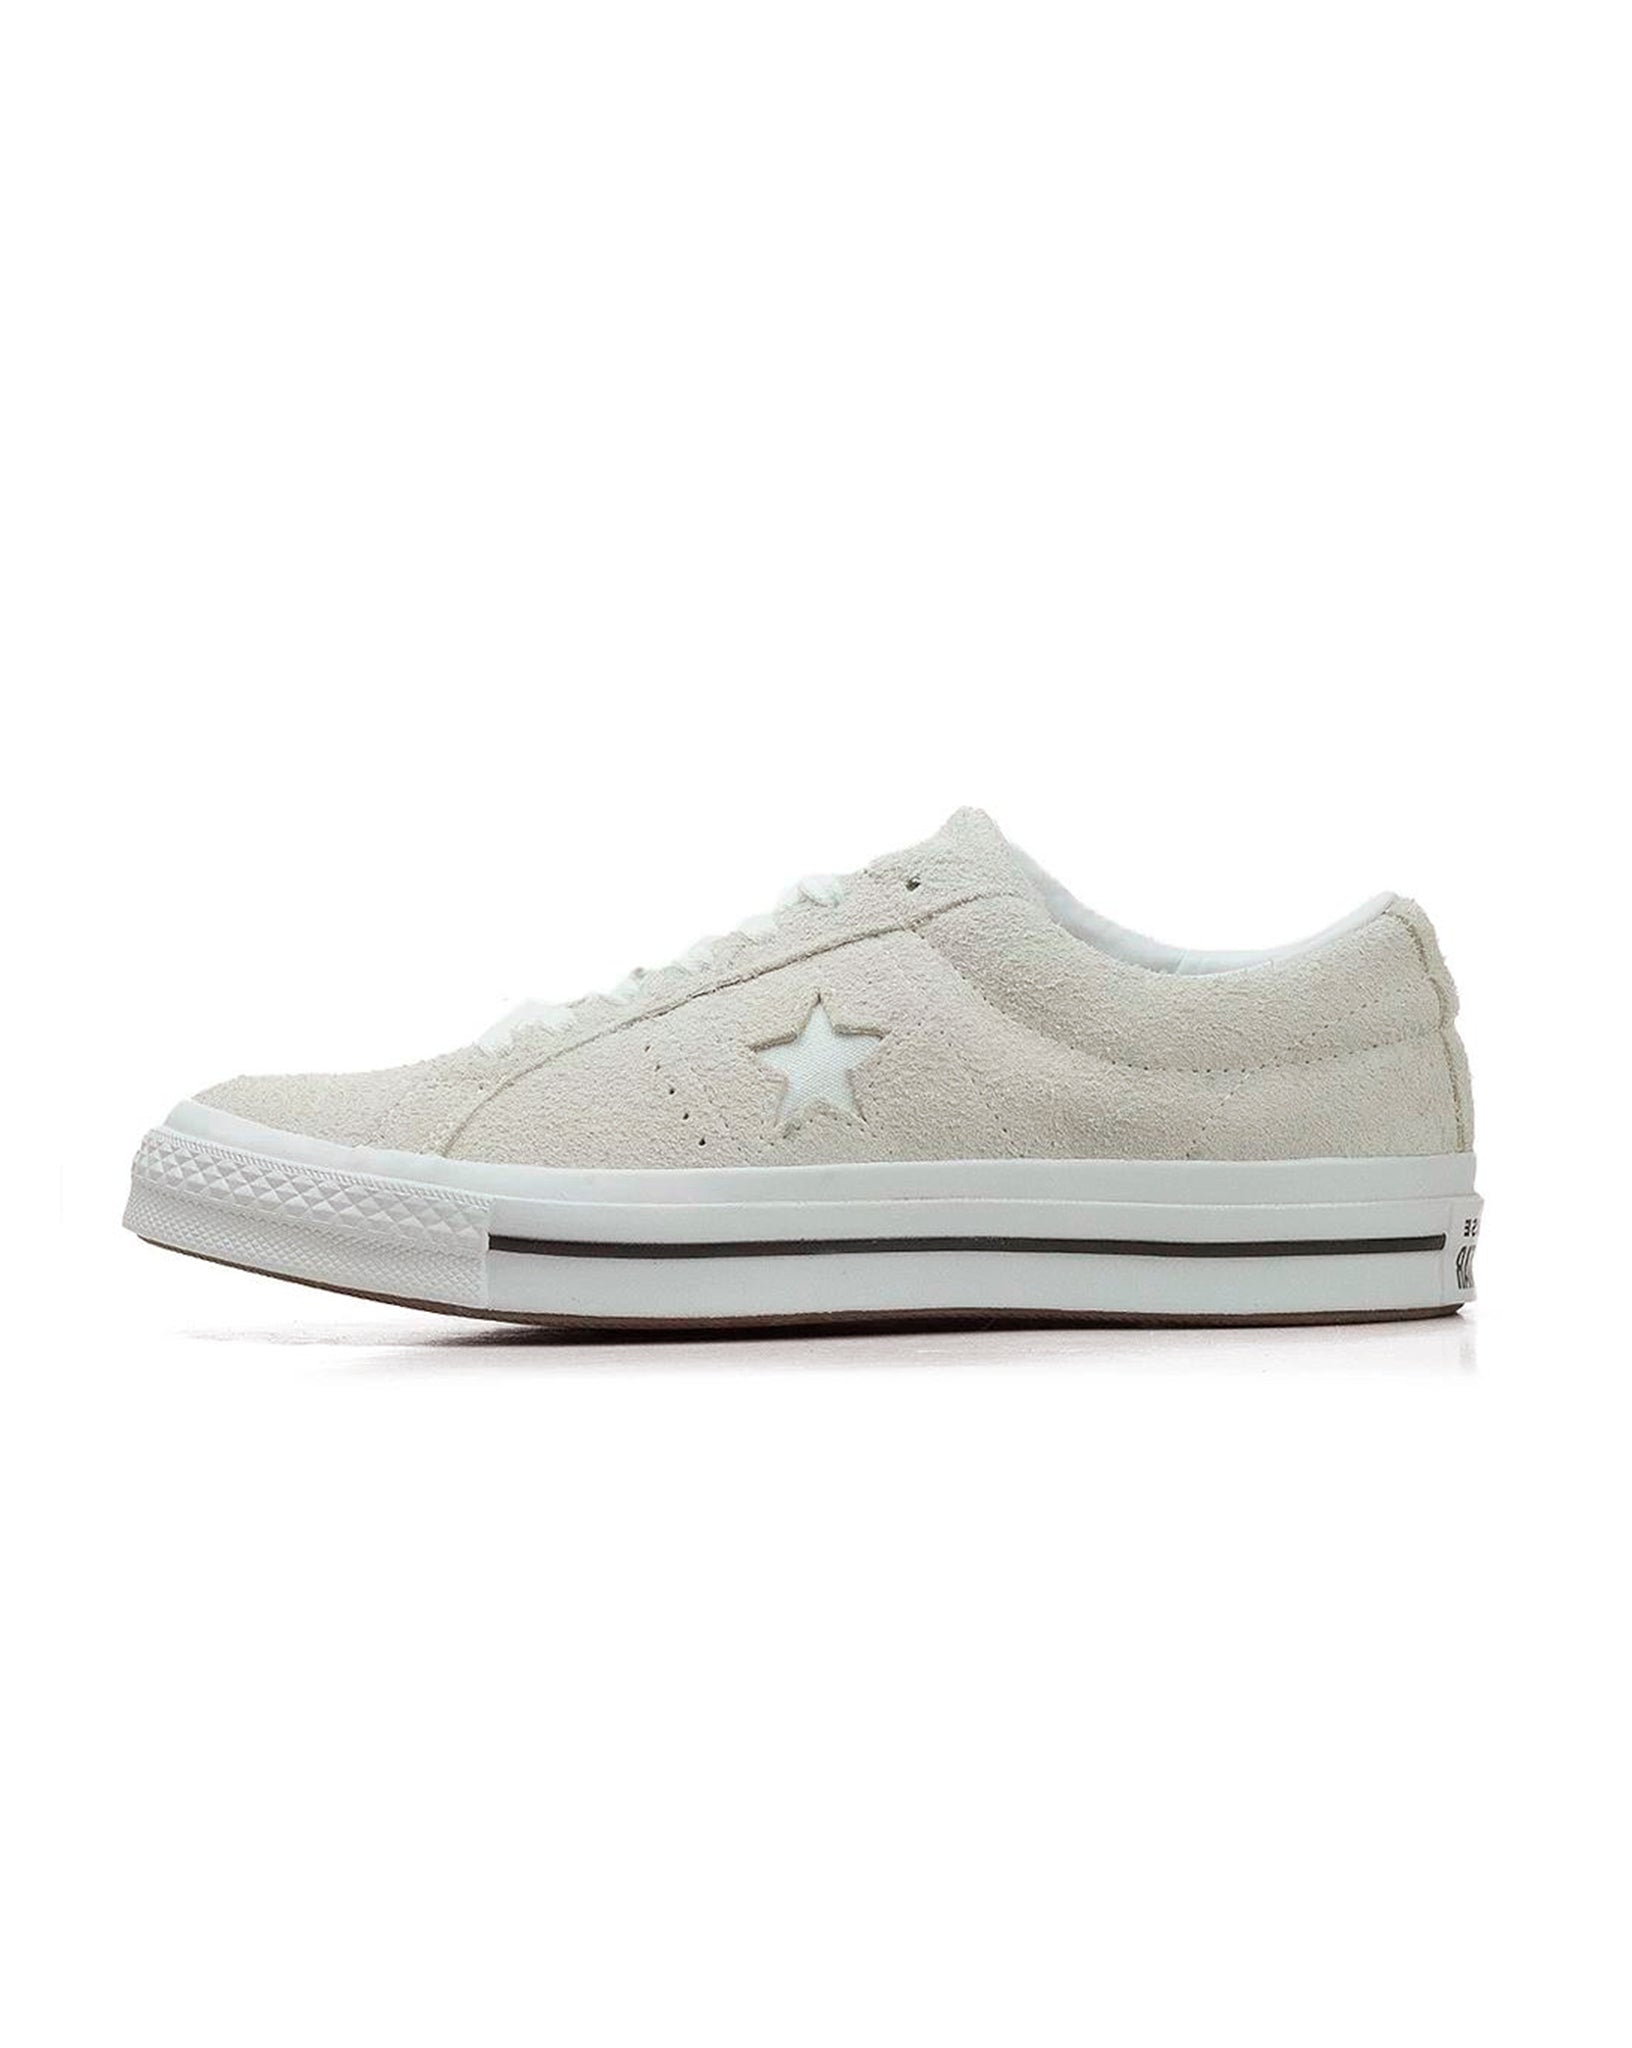 Tênis Converse Cons One Star Bege